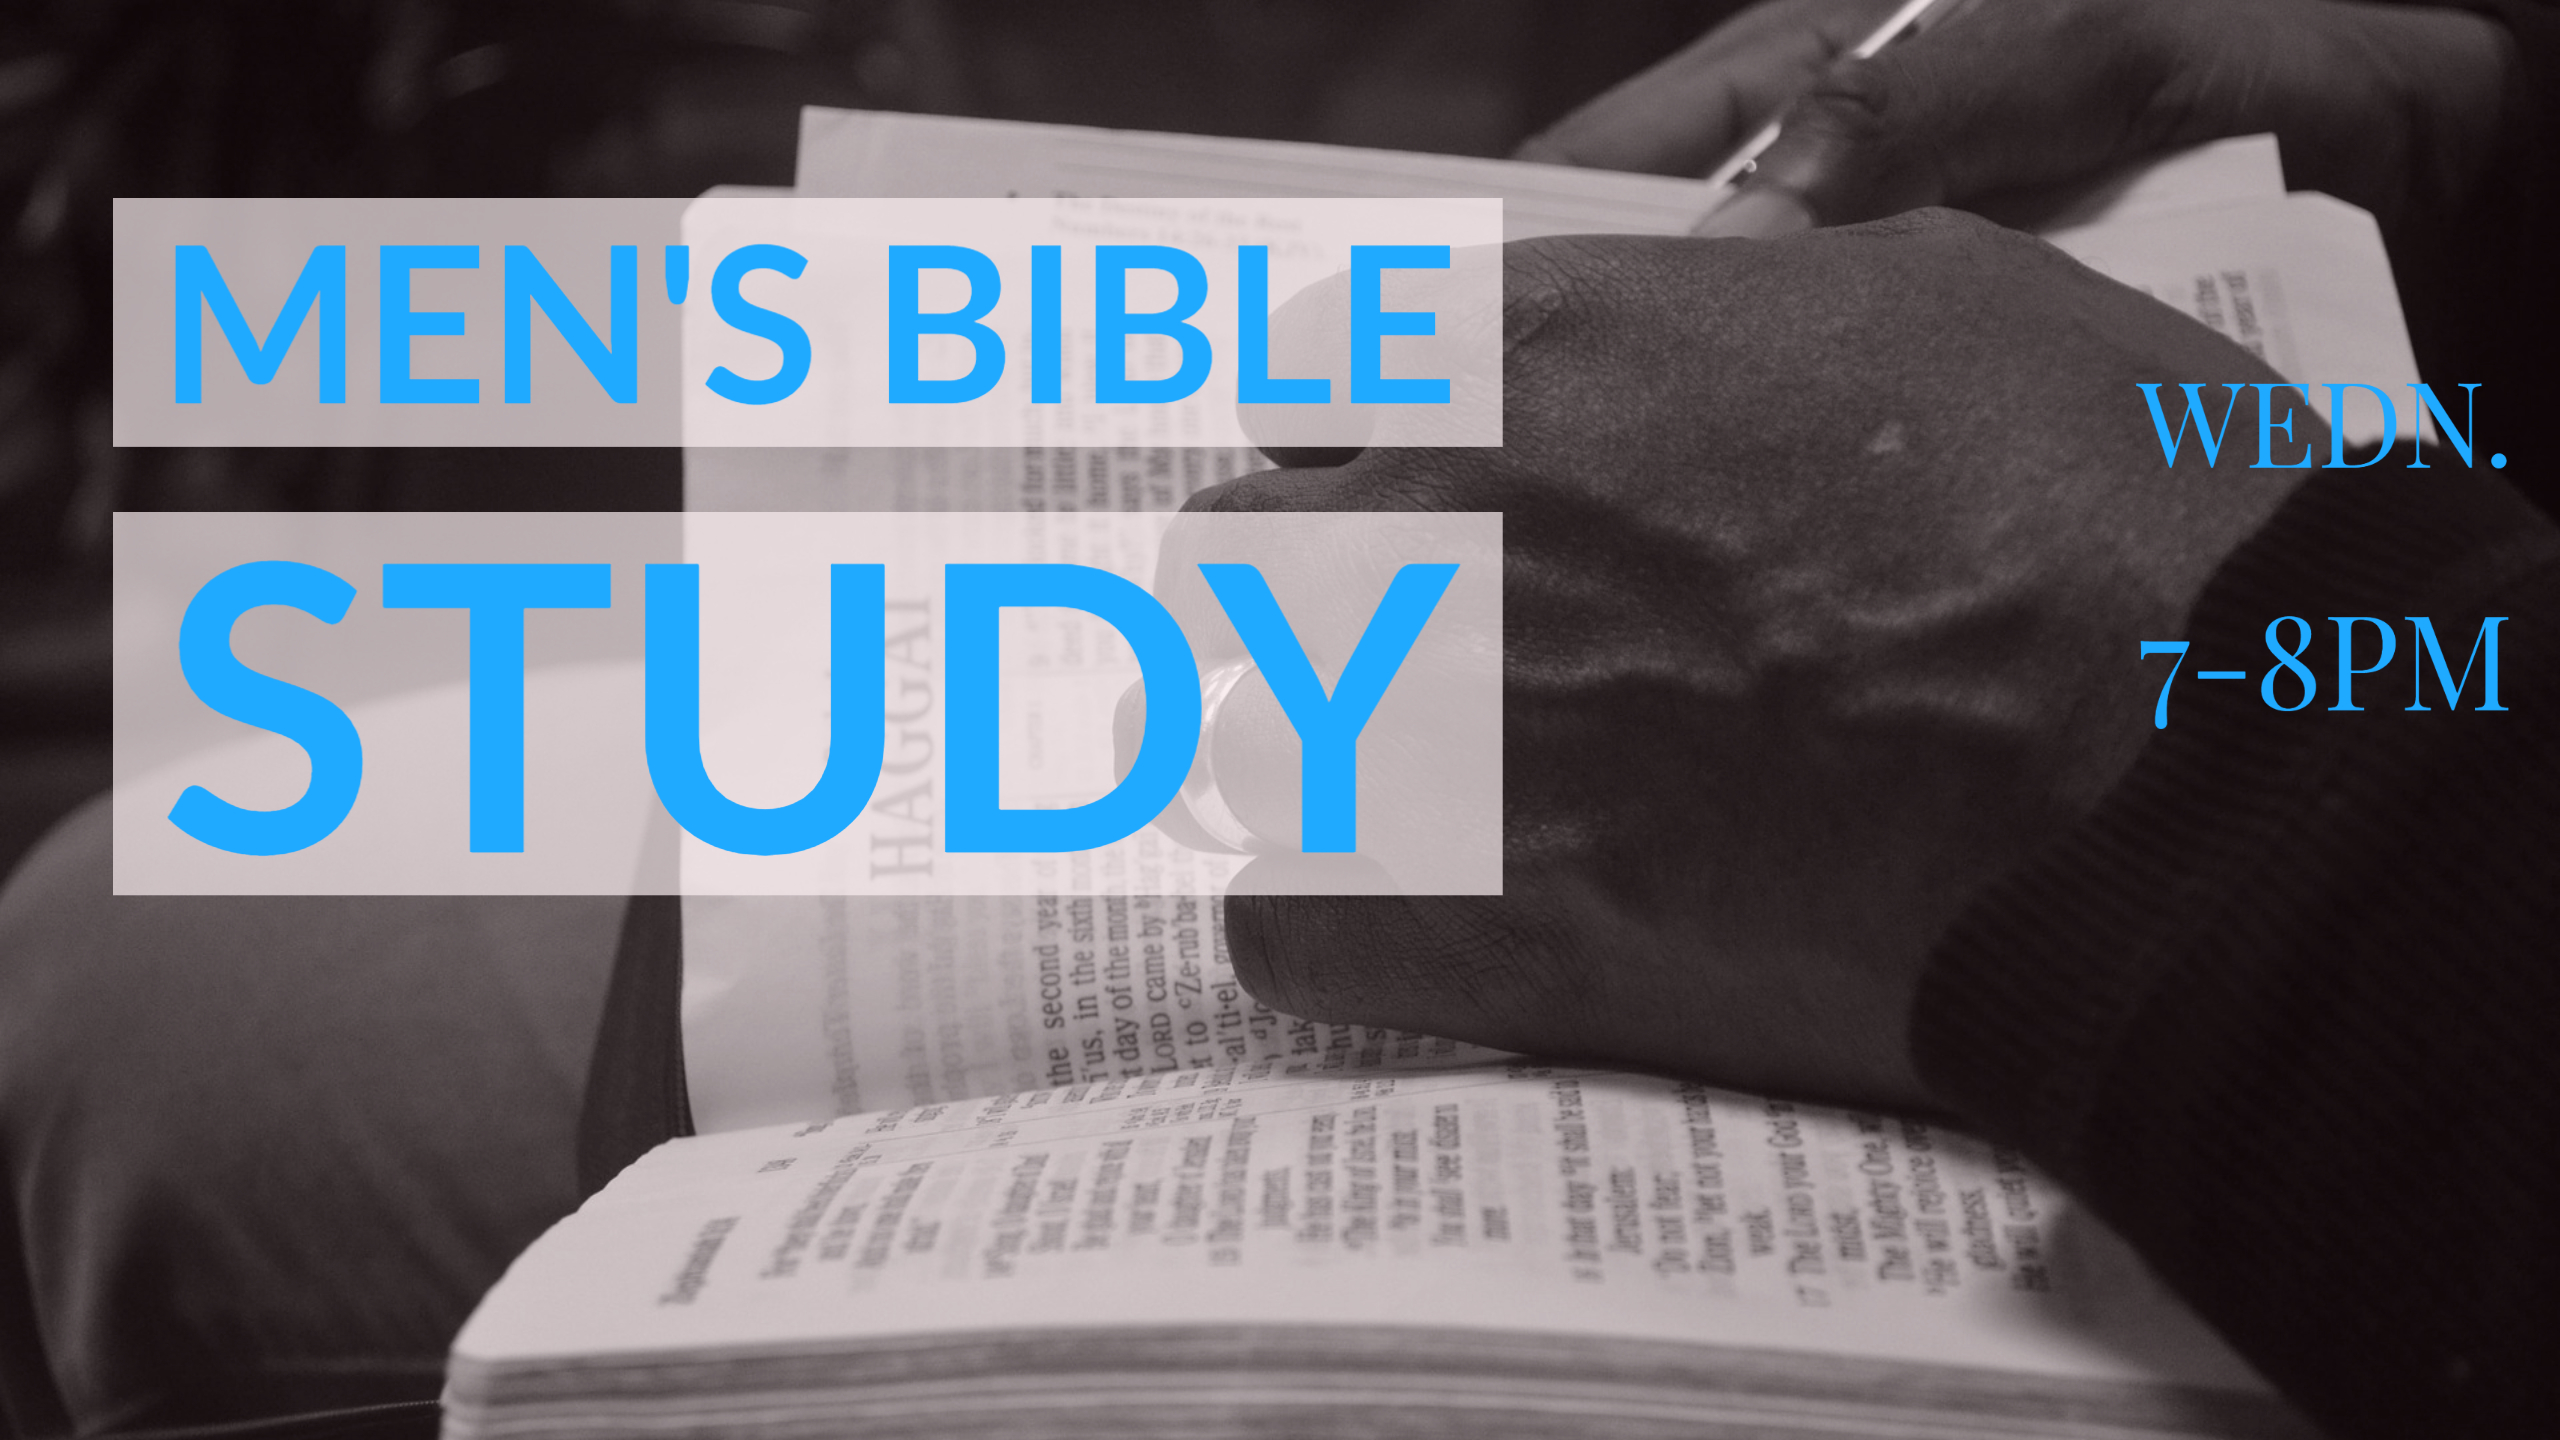 Men's Bible Study Wed image